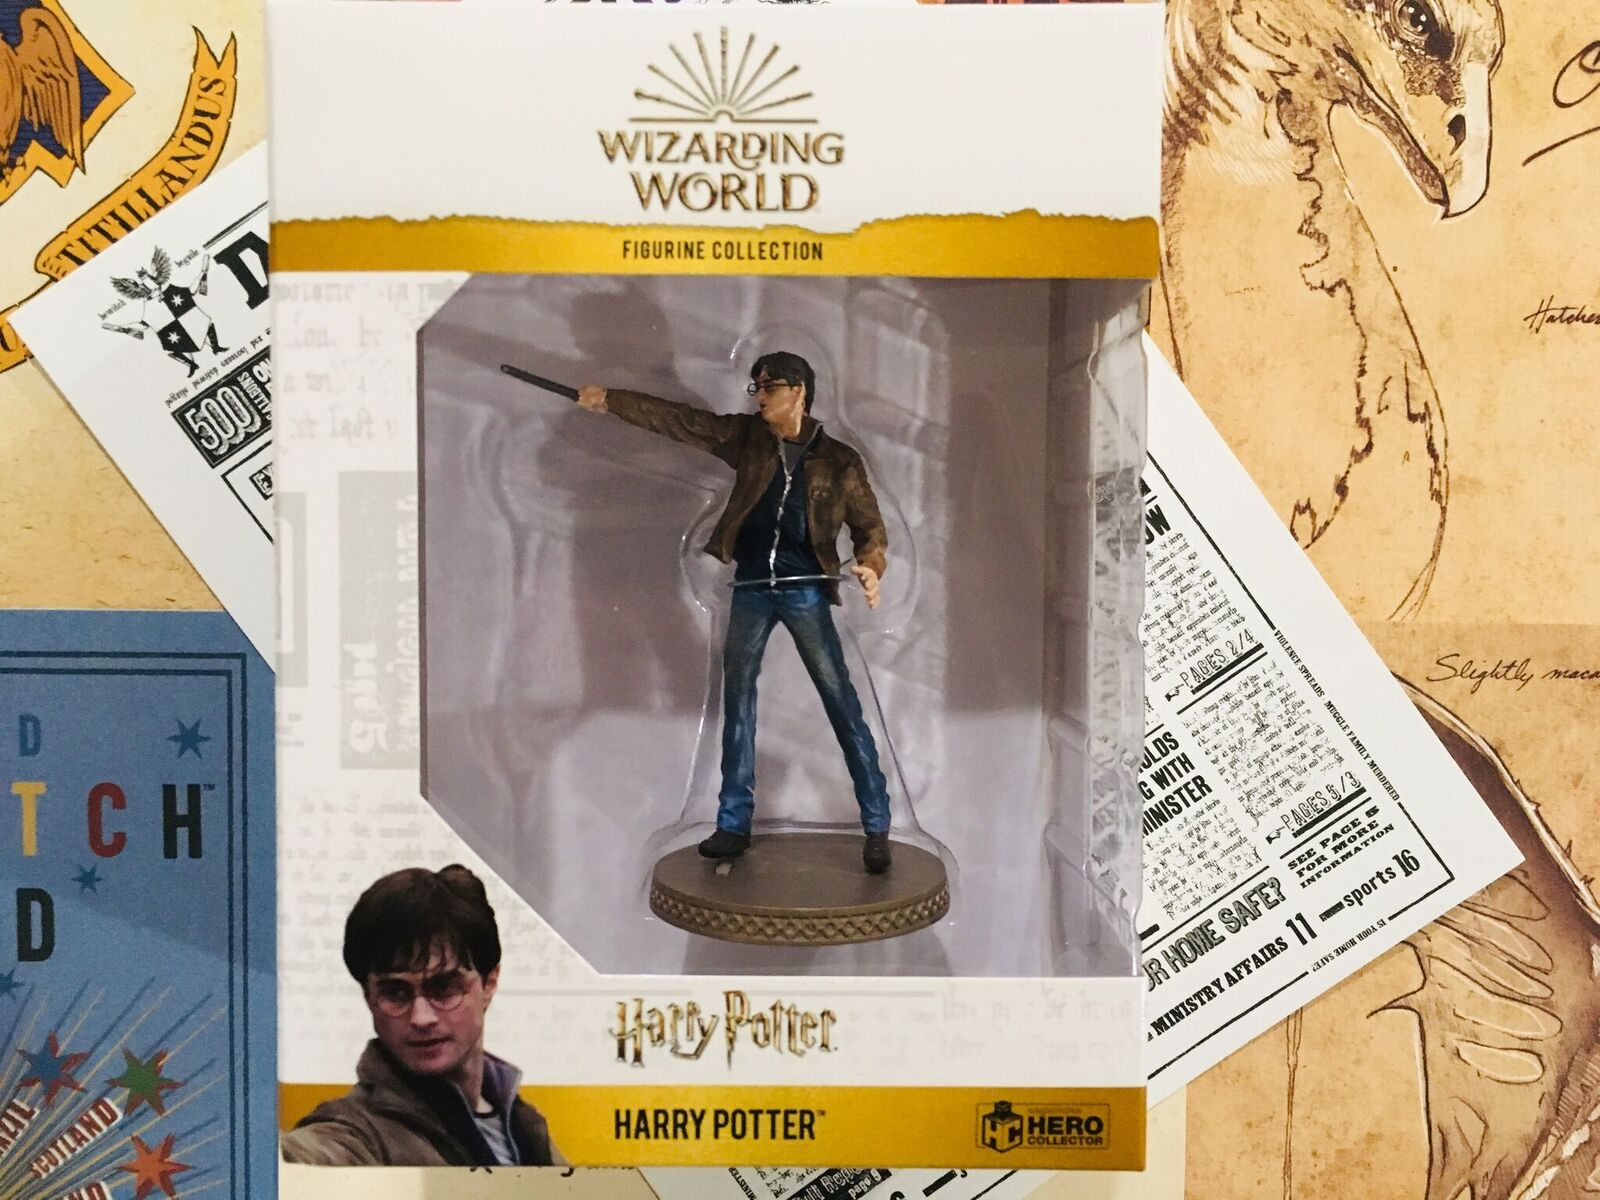 Harry is carefully packaged in a collectible box to ensure safety during delivery as well as for maximum display capabilities.